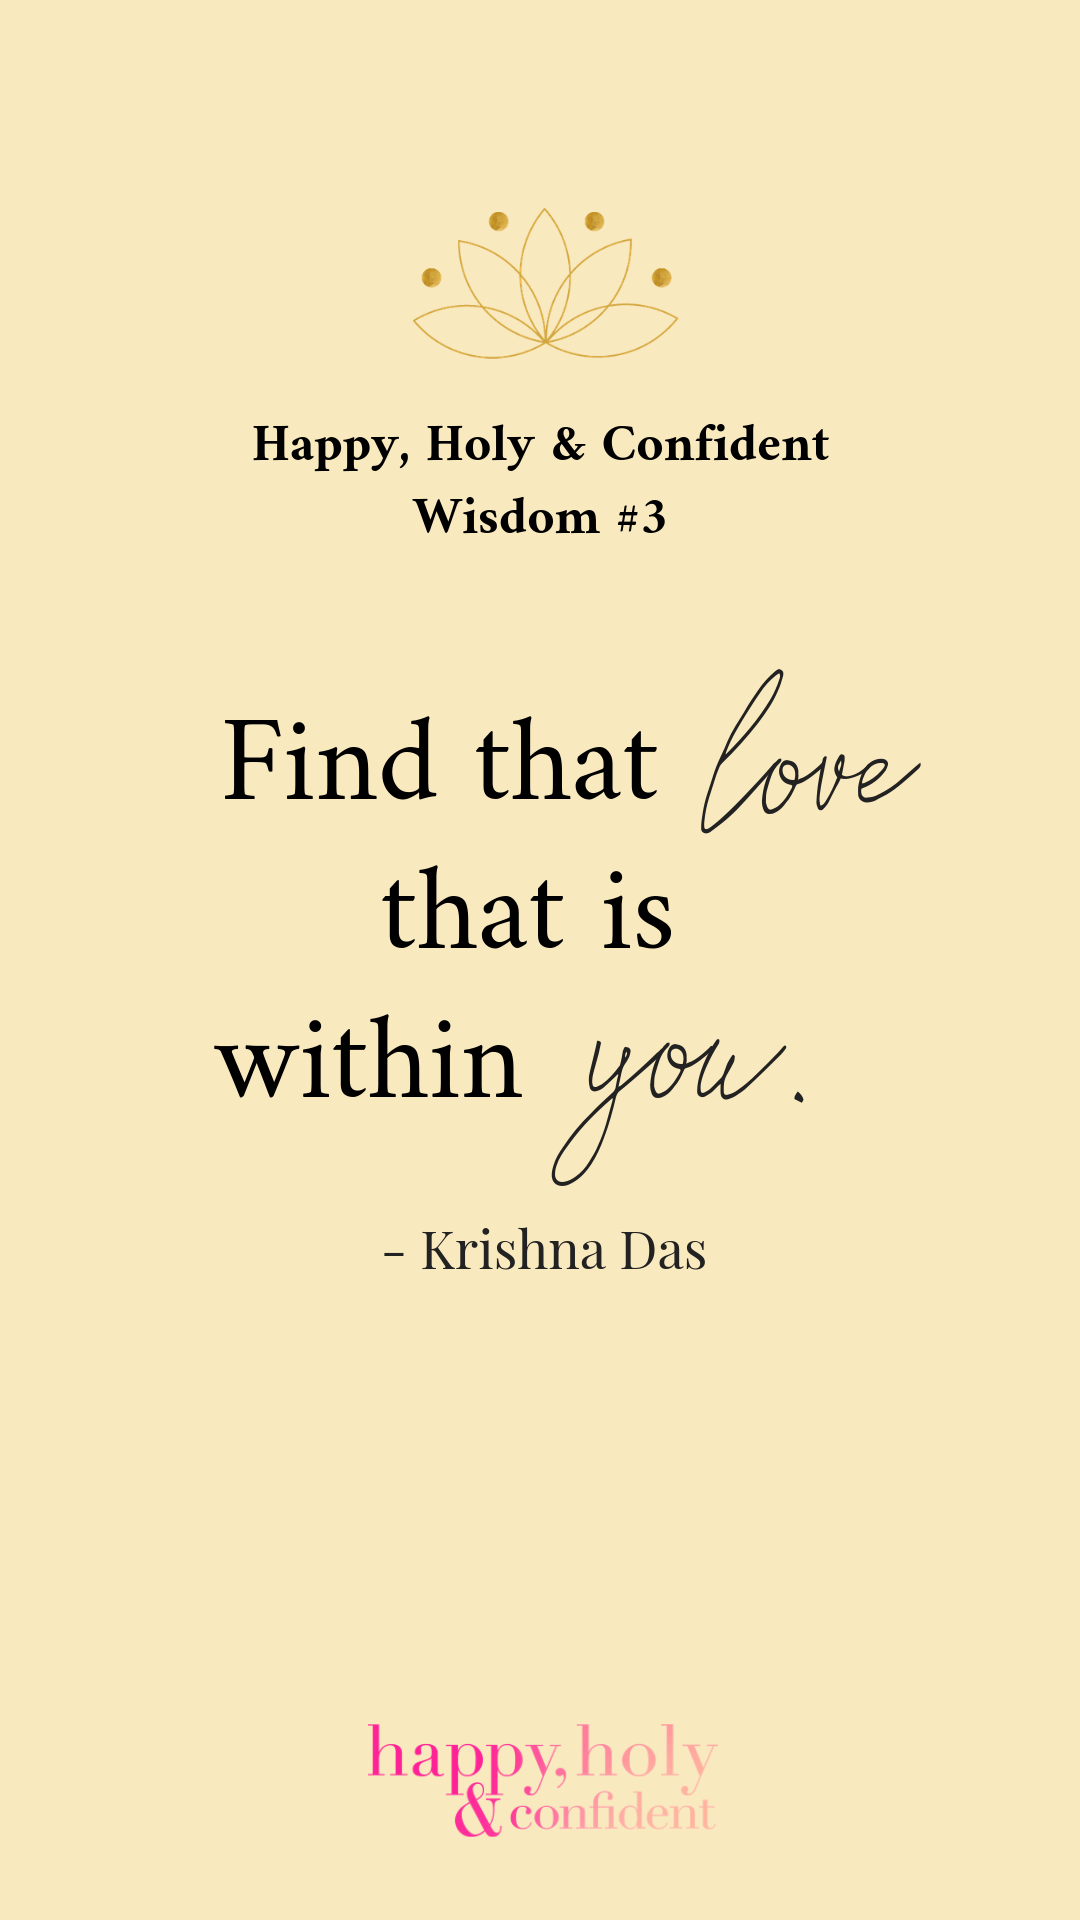 Find that love what is within you